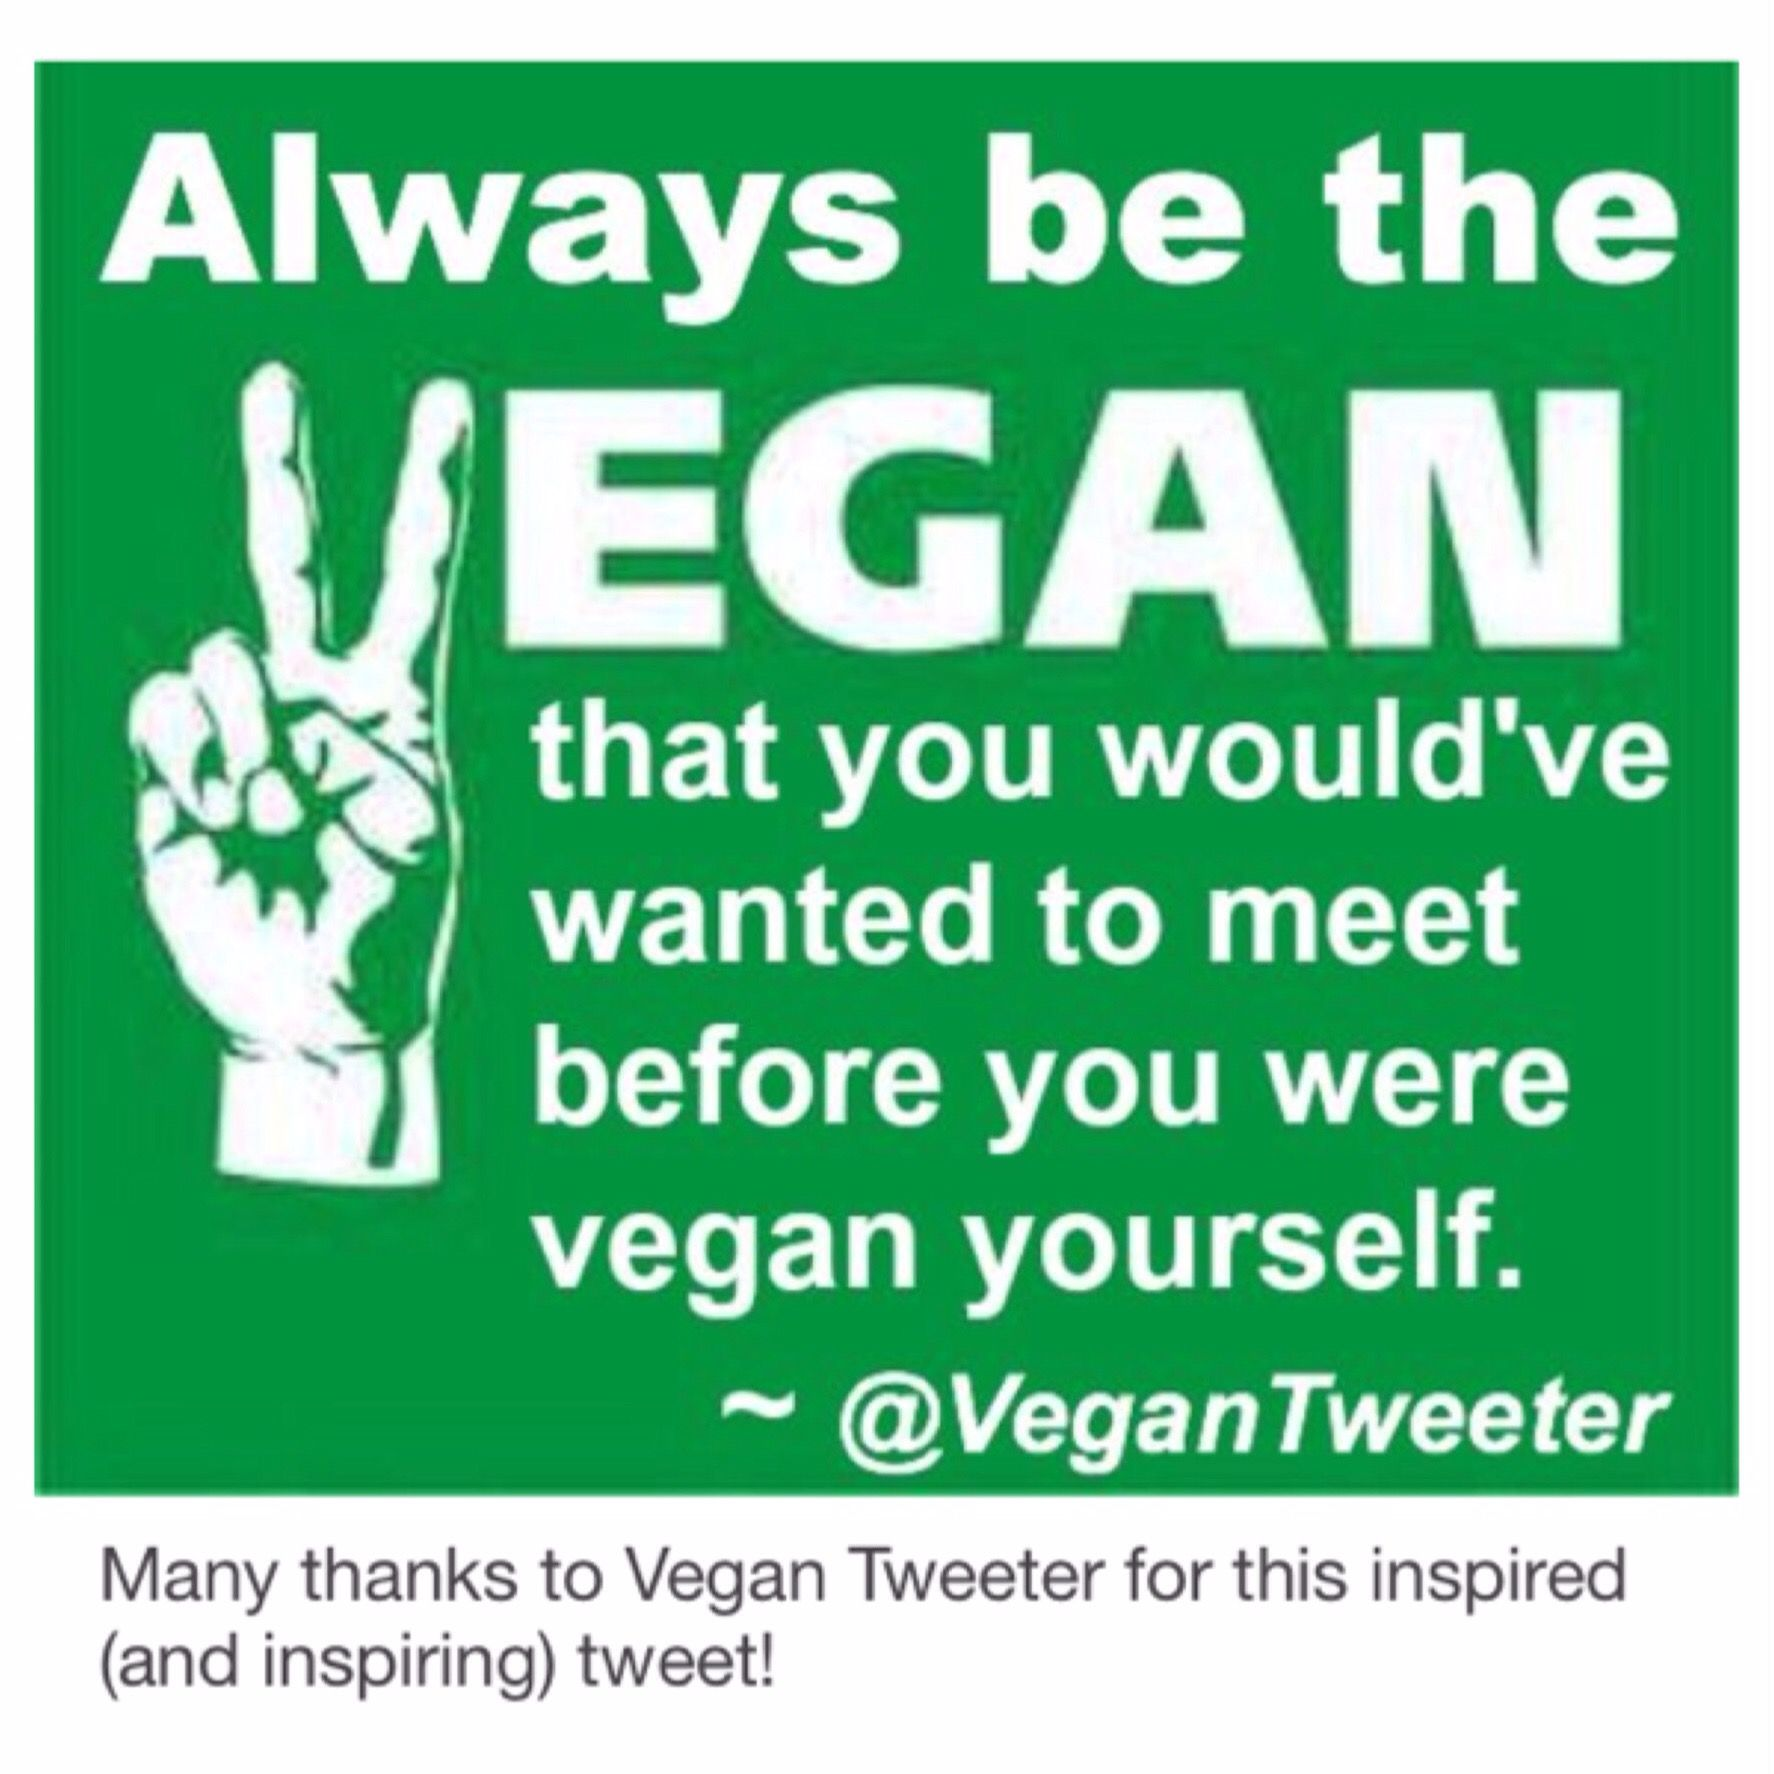 19 Vegan Quotes Quotations That Make You Think Veginspired Vegan Quotes Vegan Facts Vegan Inspiration